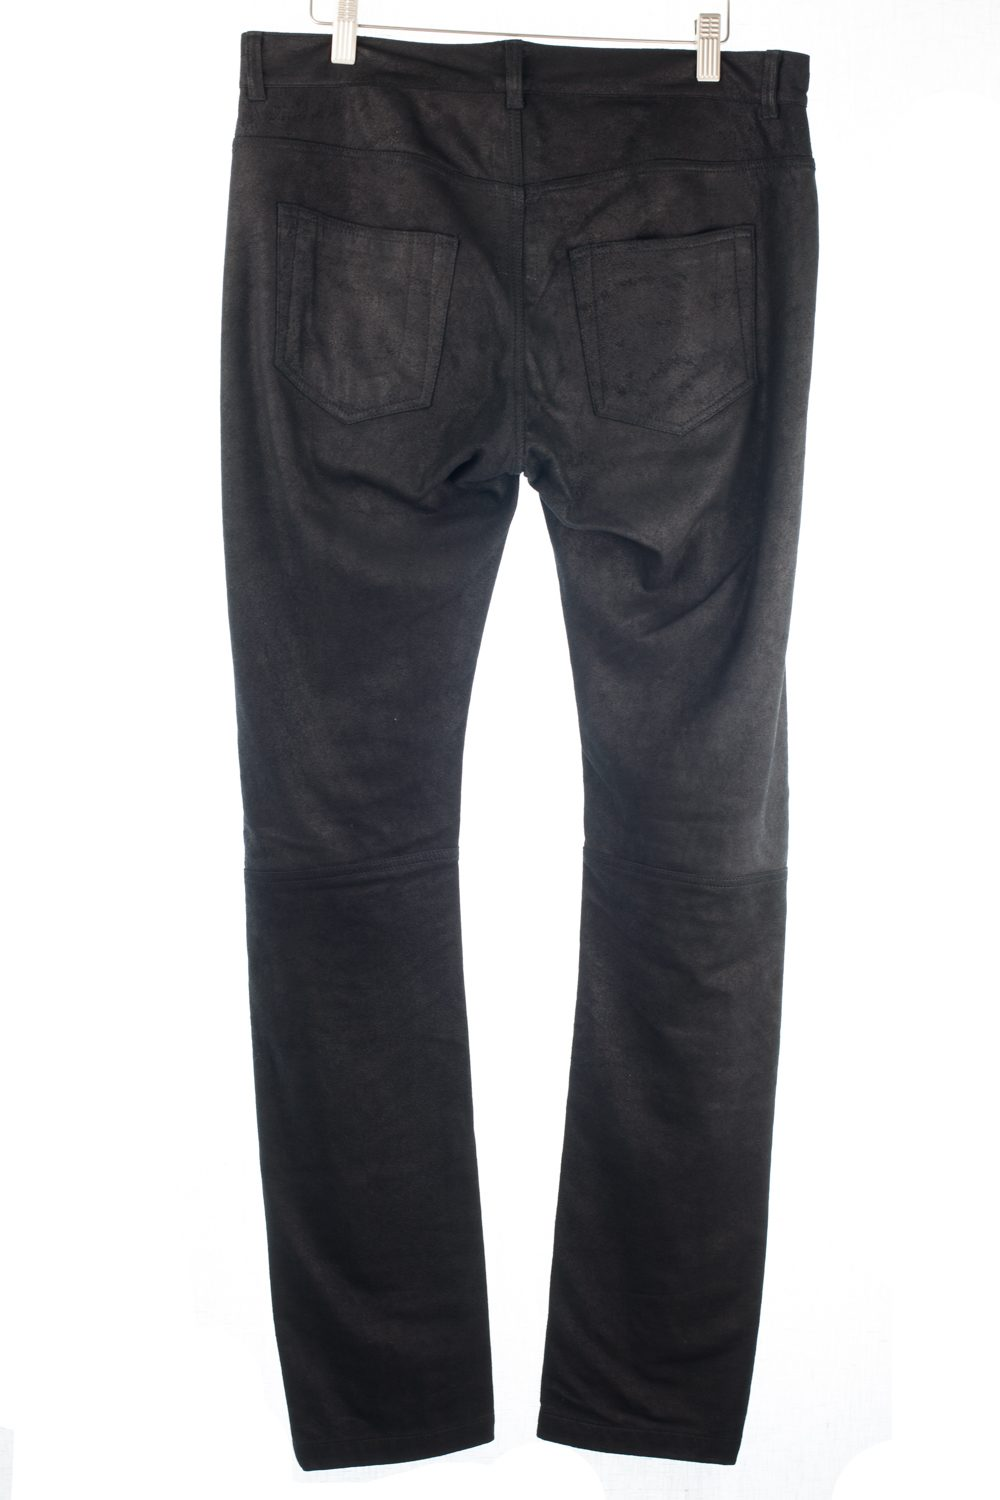 Fw14 Moody Leather/Cotton Blend Pants